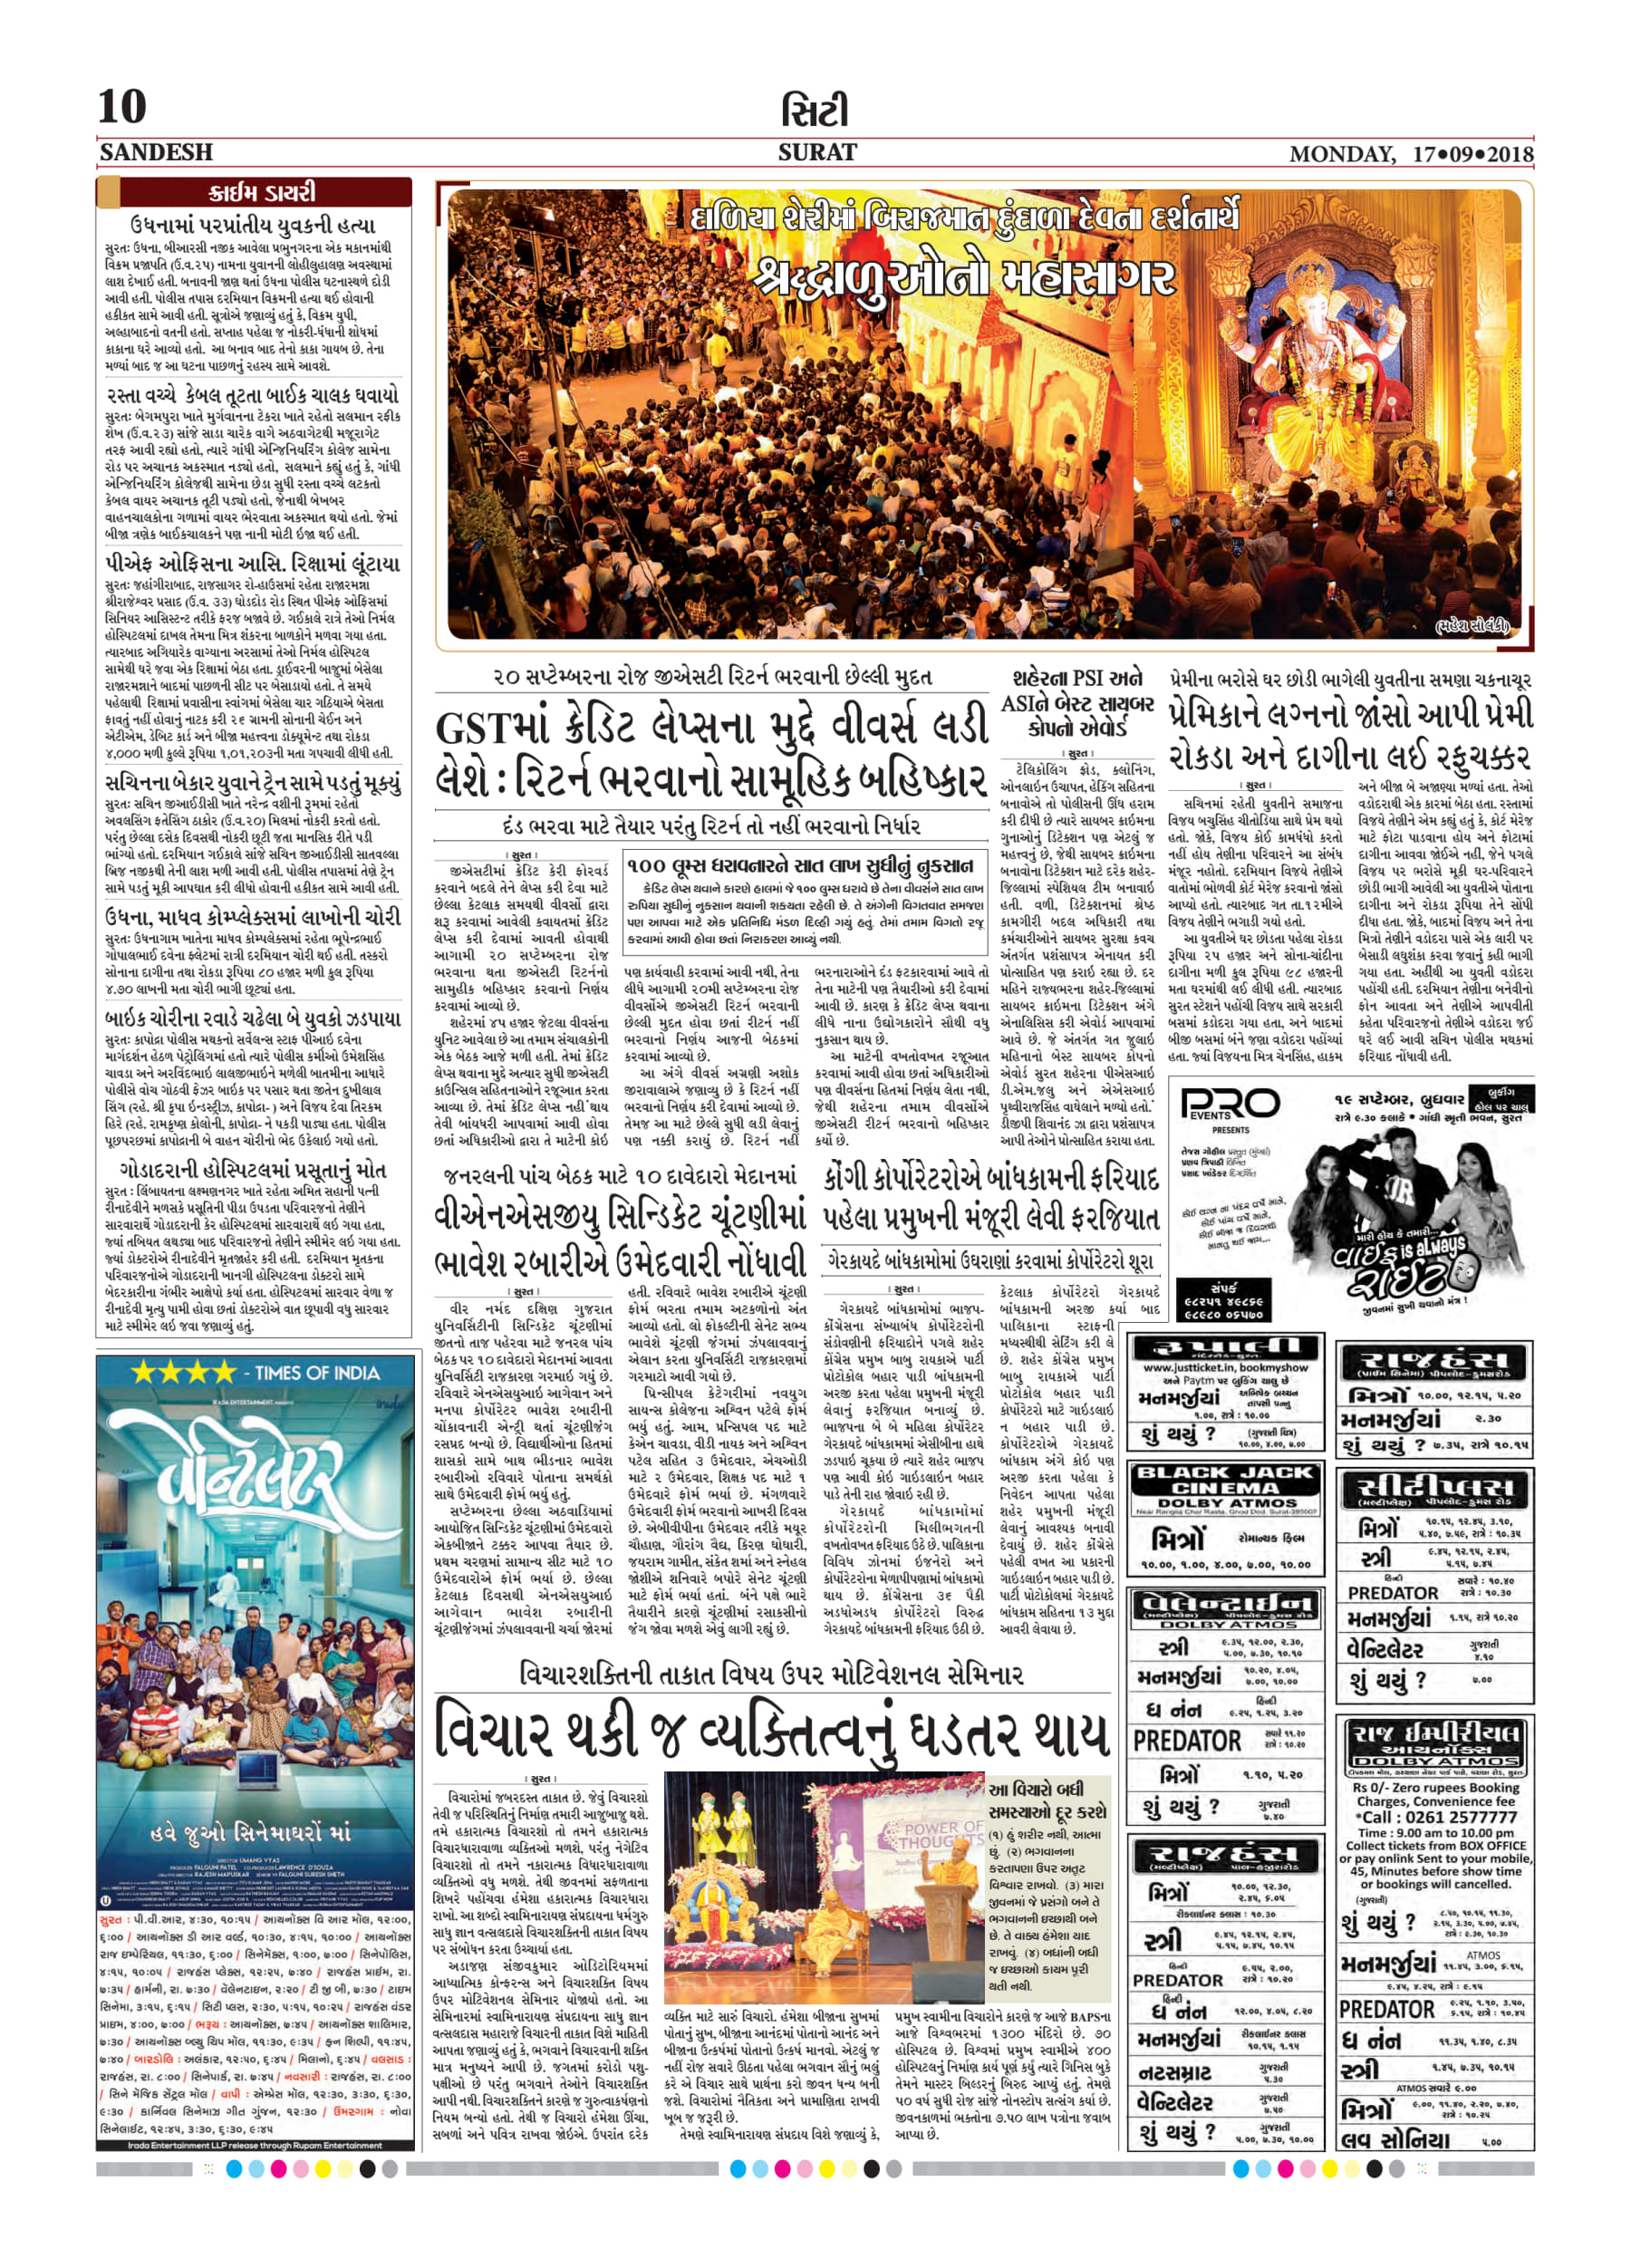 SURAT Page on